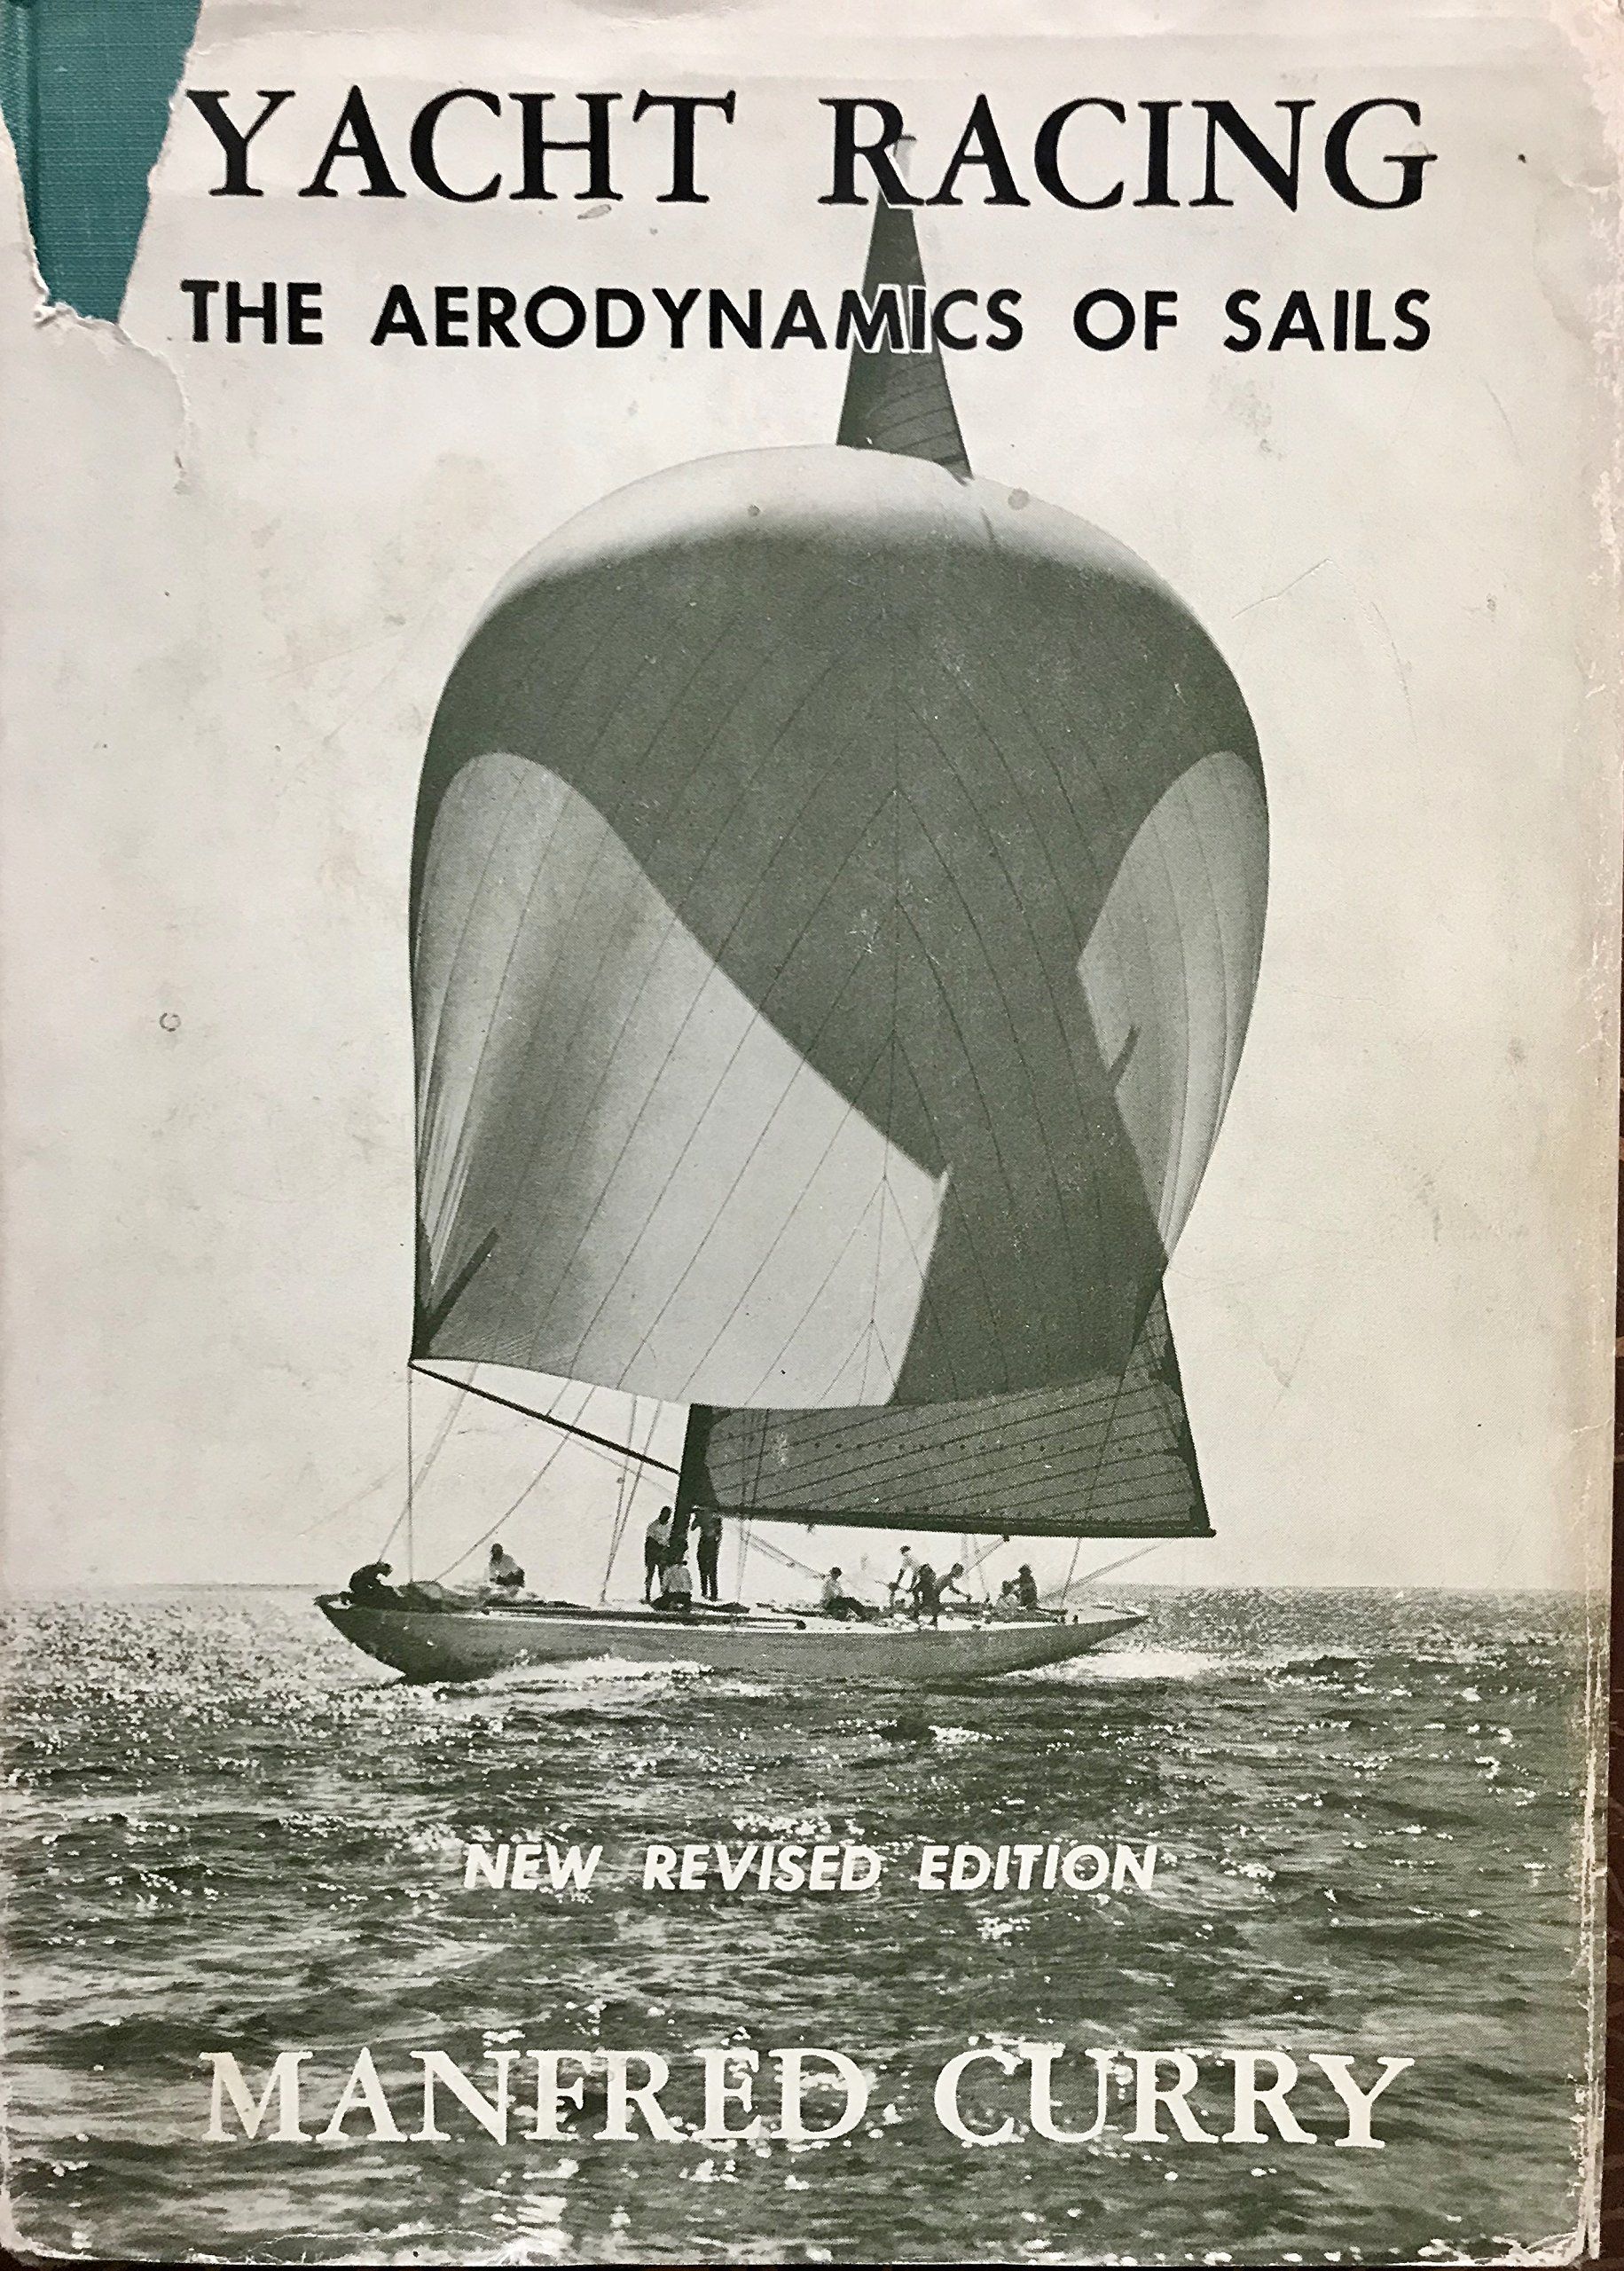 Yacht Racing - The Aerodynamics of Sails and Racing Tactics: Manfred Curry:  Amazon.com: Books